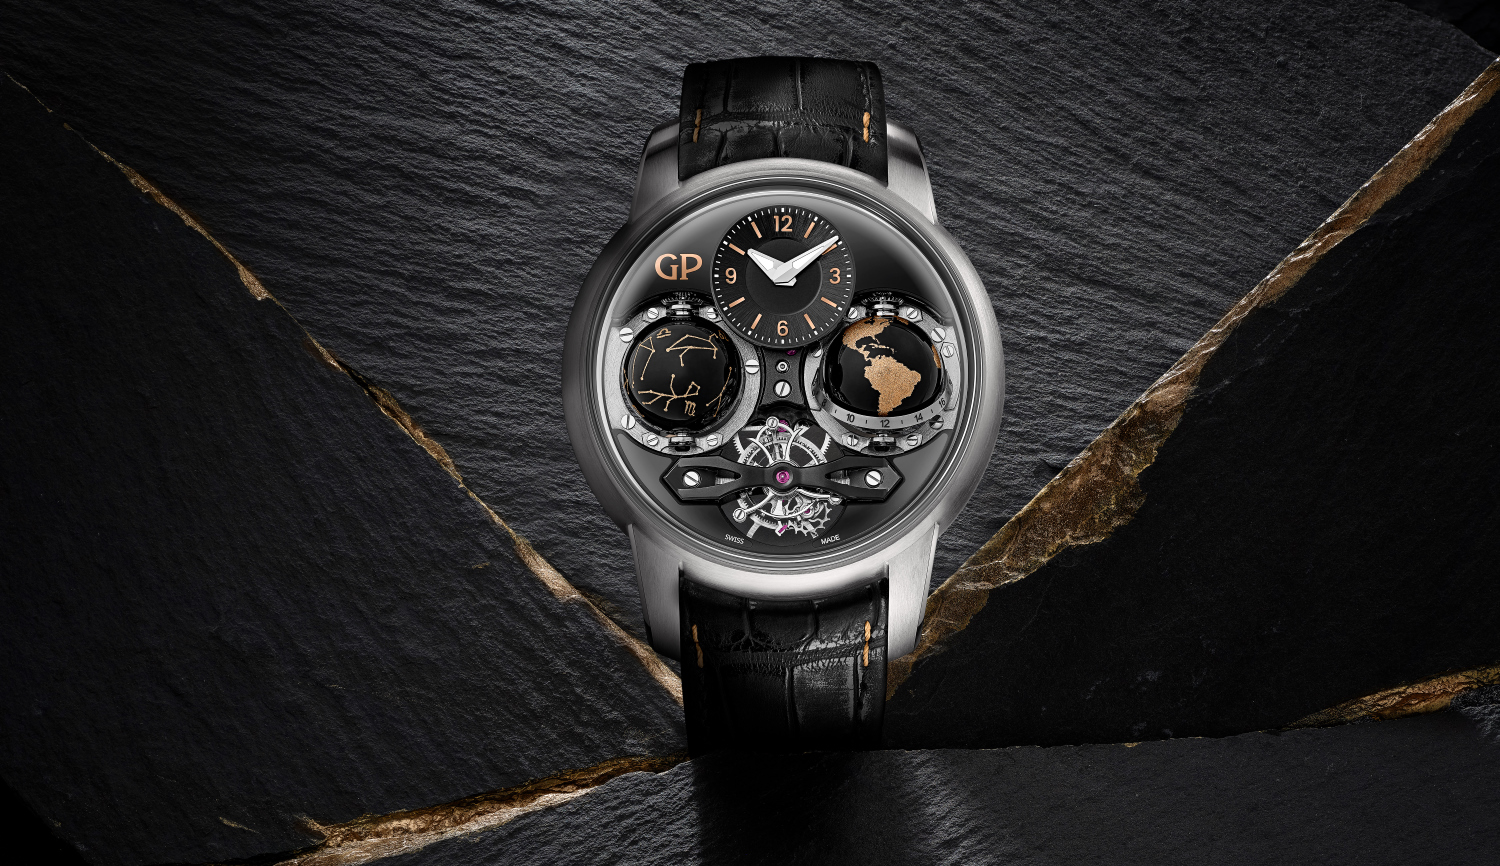 Girard-Perregaux unveils the Cosmos Infinity Edition